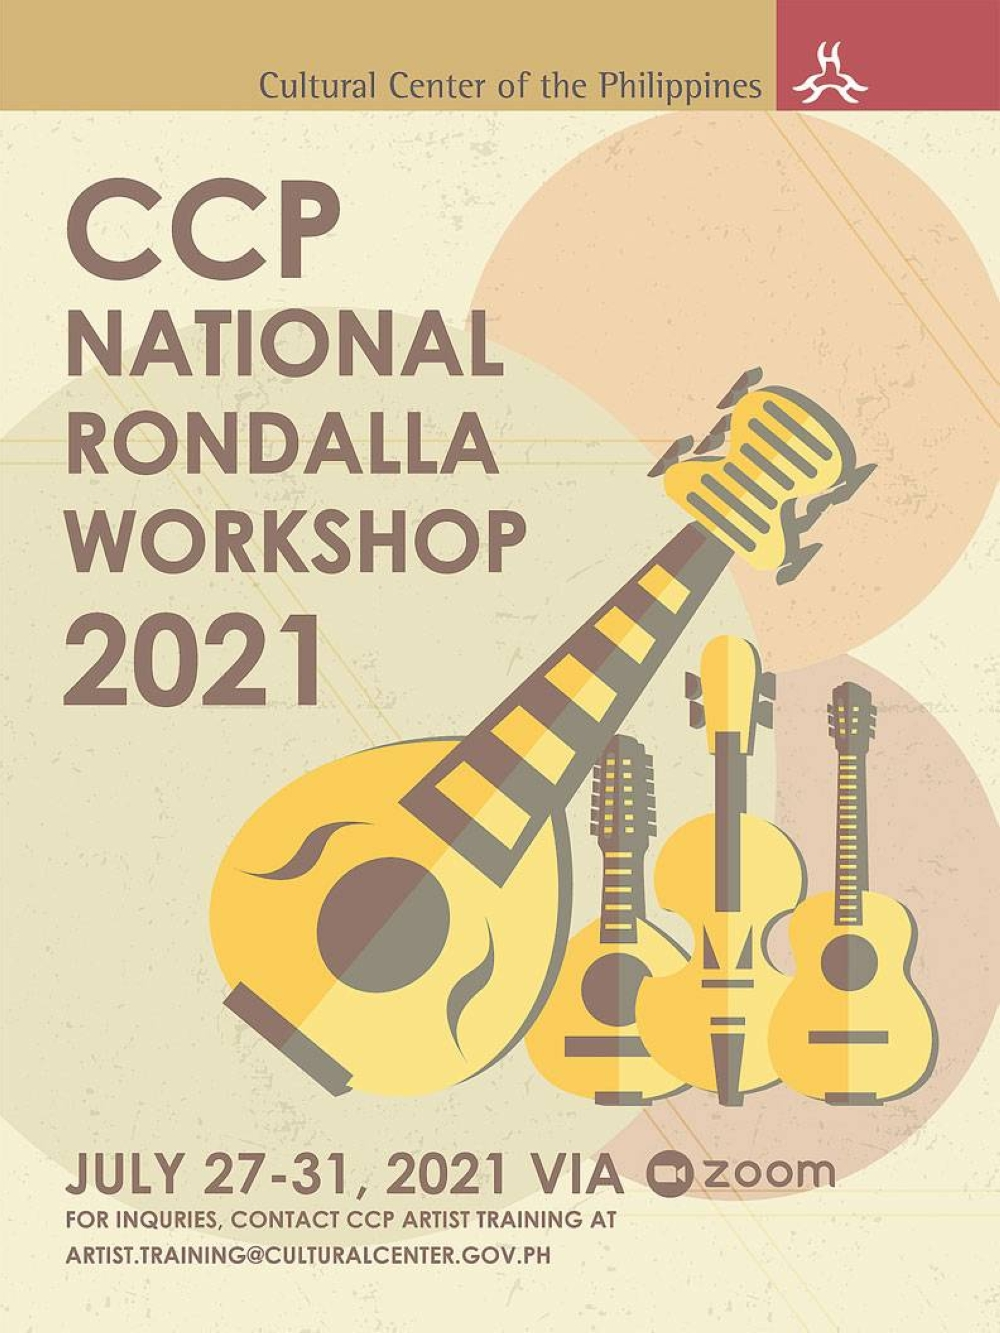 Valuing the contribution of rondalla music, CCP continues to come up with programs to further this genre, such as the upcoming CCP National Rondalla Workshop